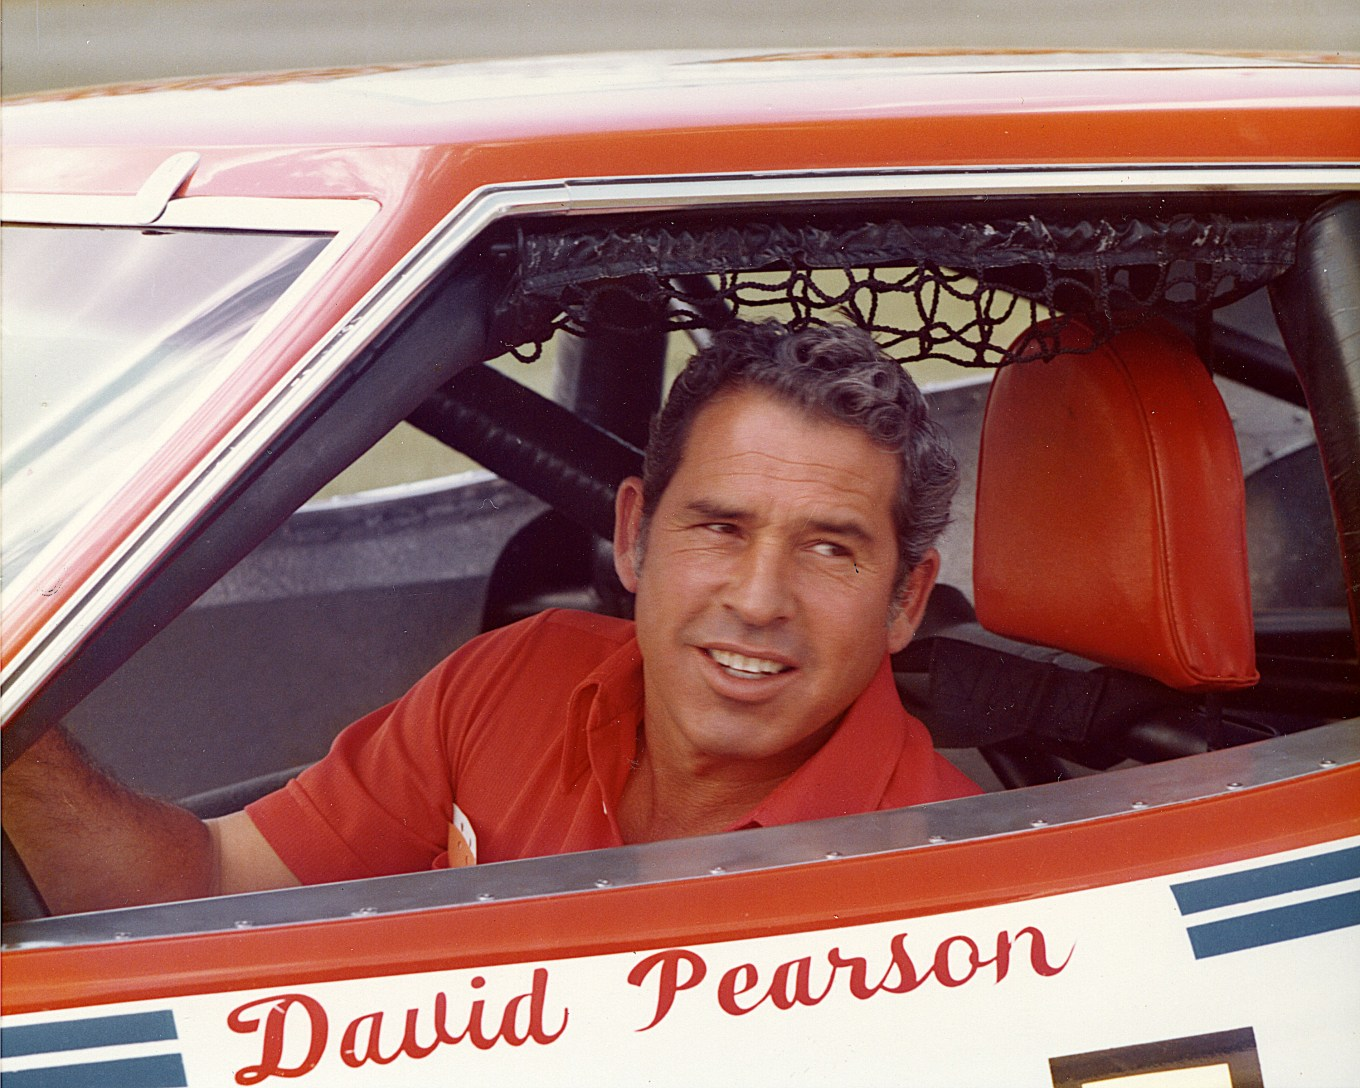 David Pearson - 1979 NASCAR Wood Brothers